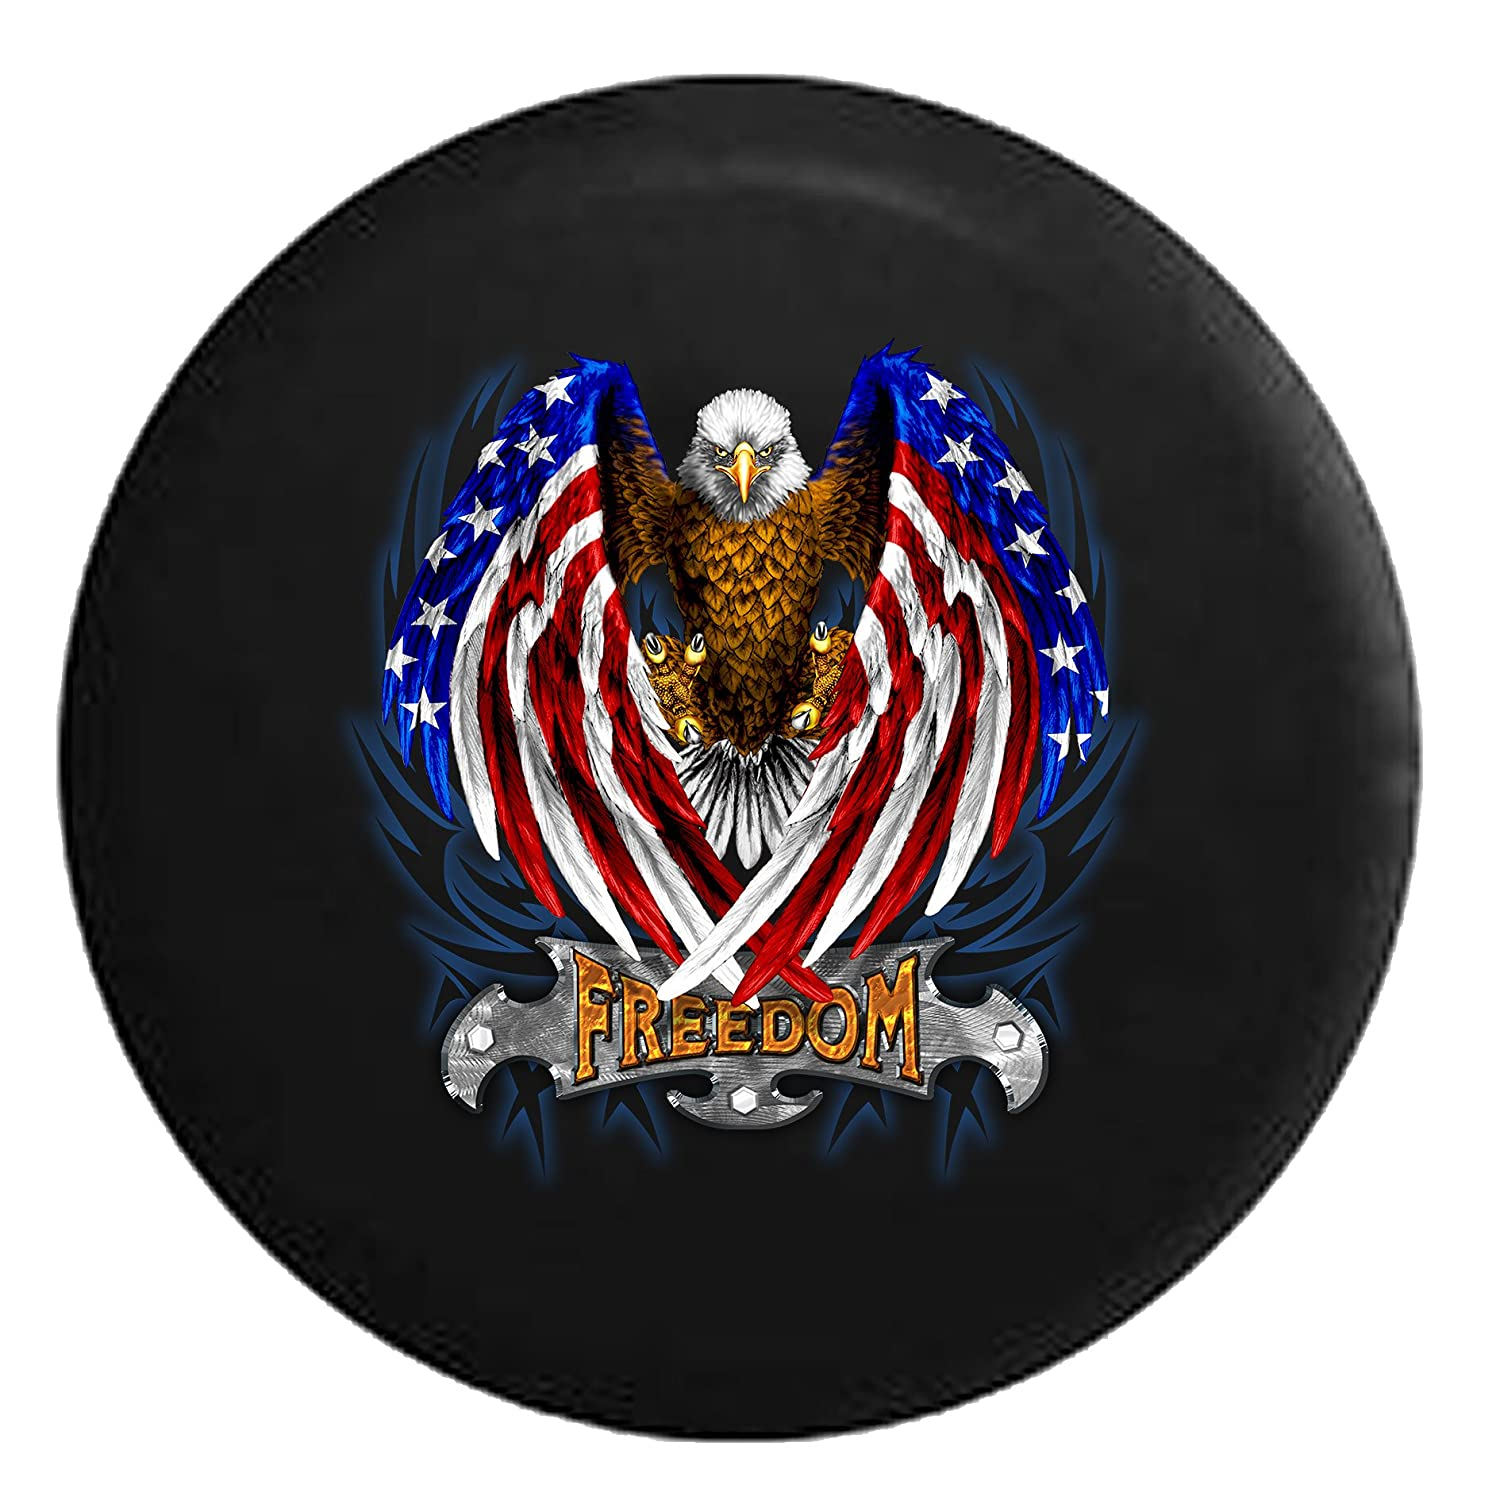 White American Bald Eagle in Red and Blue Freedom Crest and Black /& Blue TribalSpare Tire Cover Black 32 in Pike Outdoors